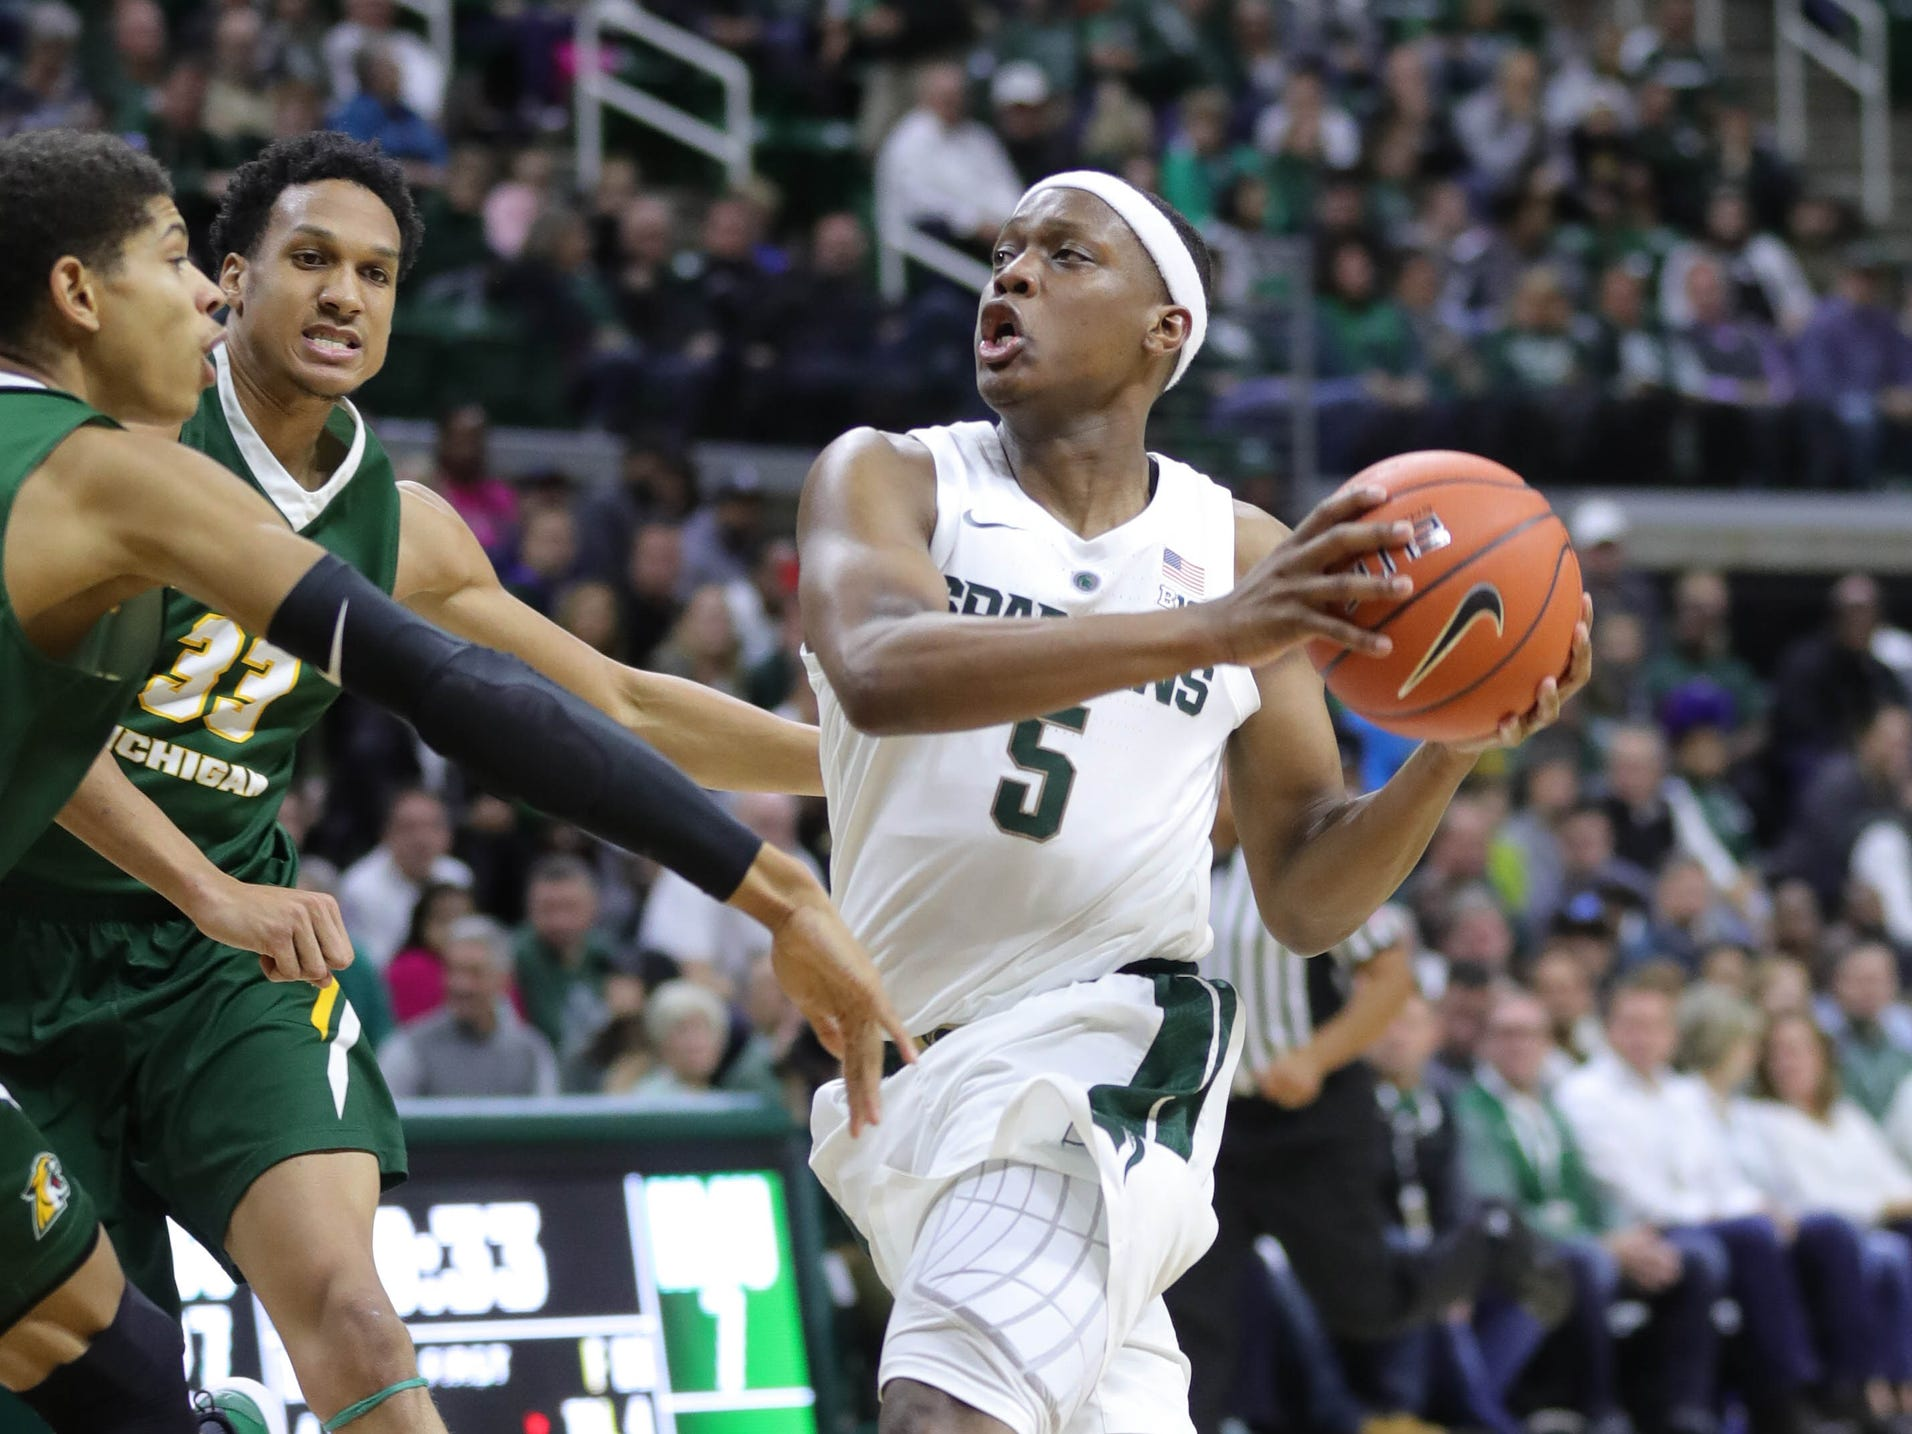 Michigan State guard Cassius Winston scores against Northern Michigan during first half action Tuesday, October 30, 2018 at the Breslin Center in East Lansing, Mich.